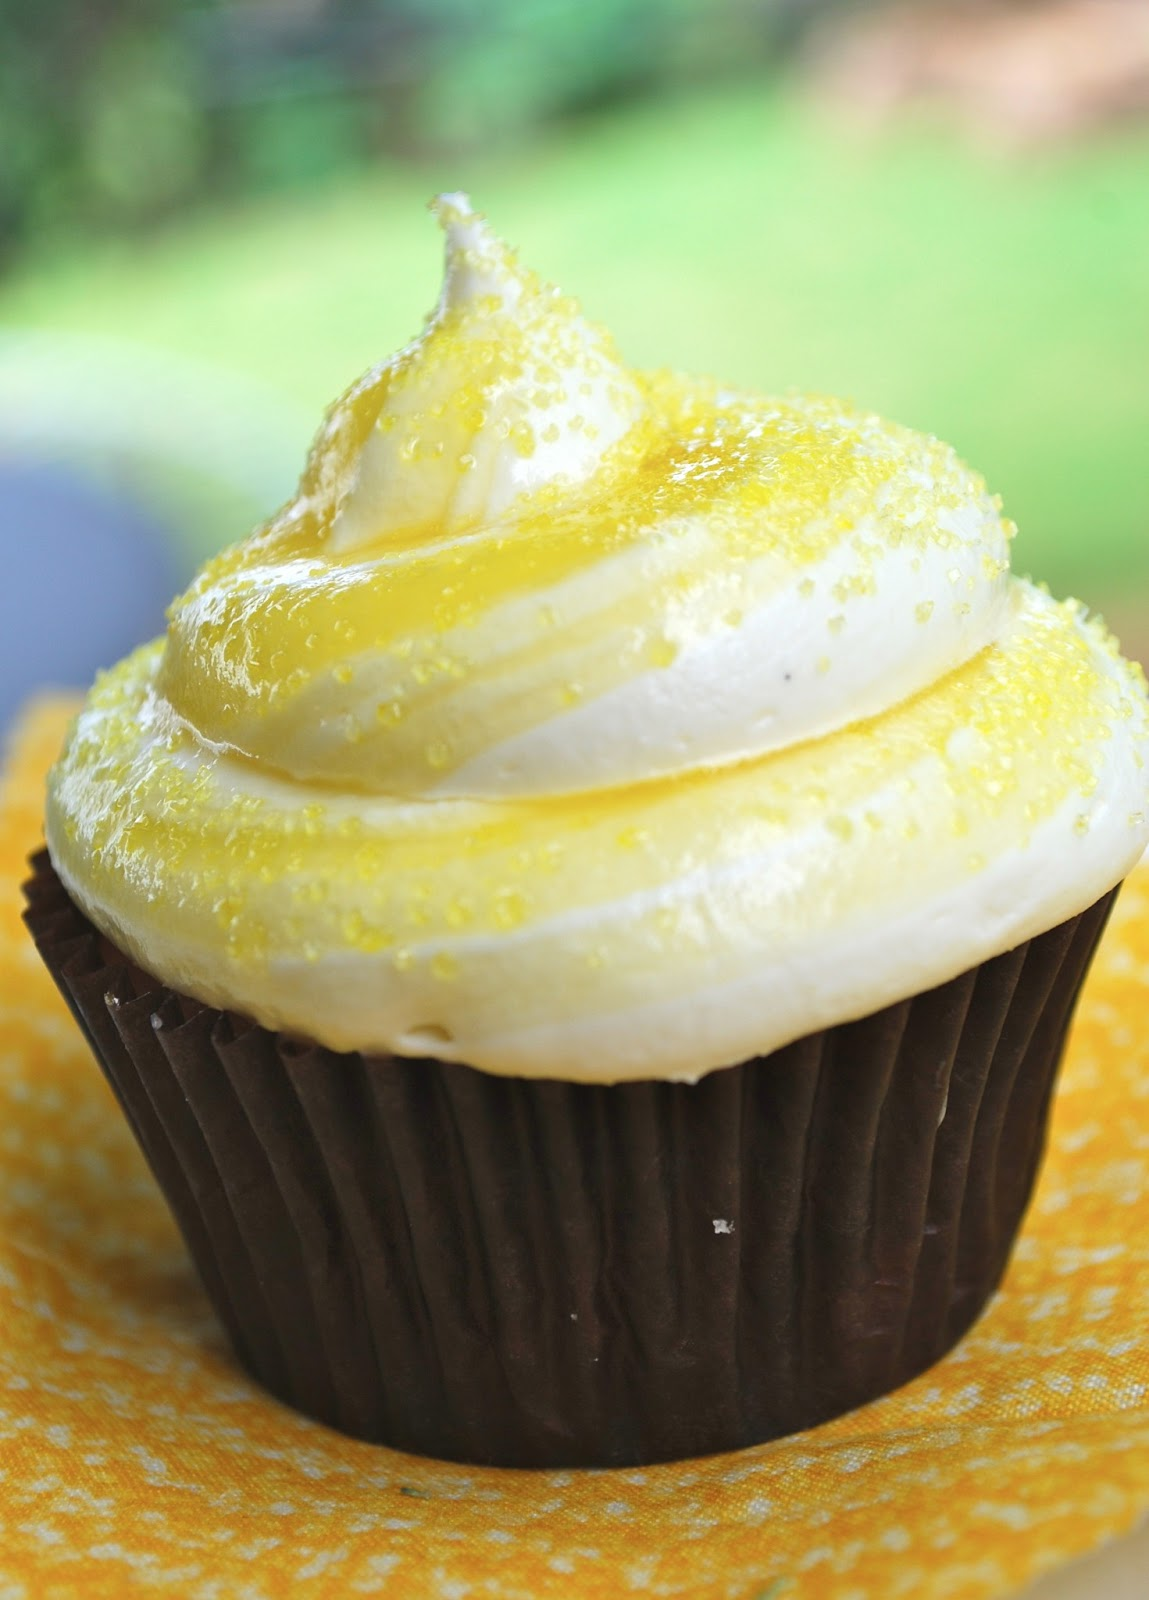 ... Cupcake recipe with the addition of coconut, lemon curd and lemon zest